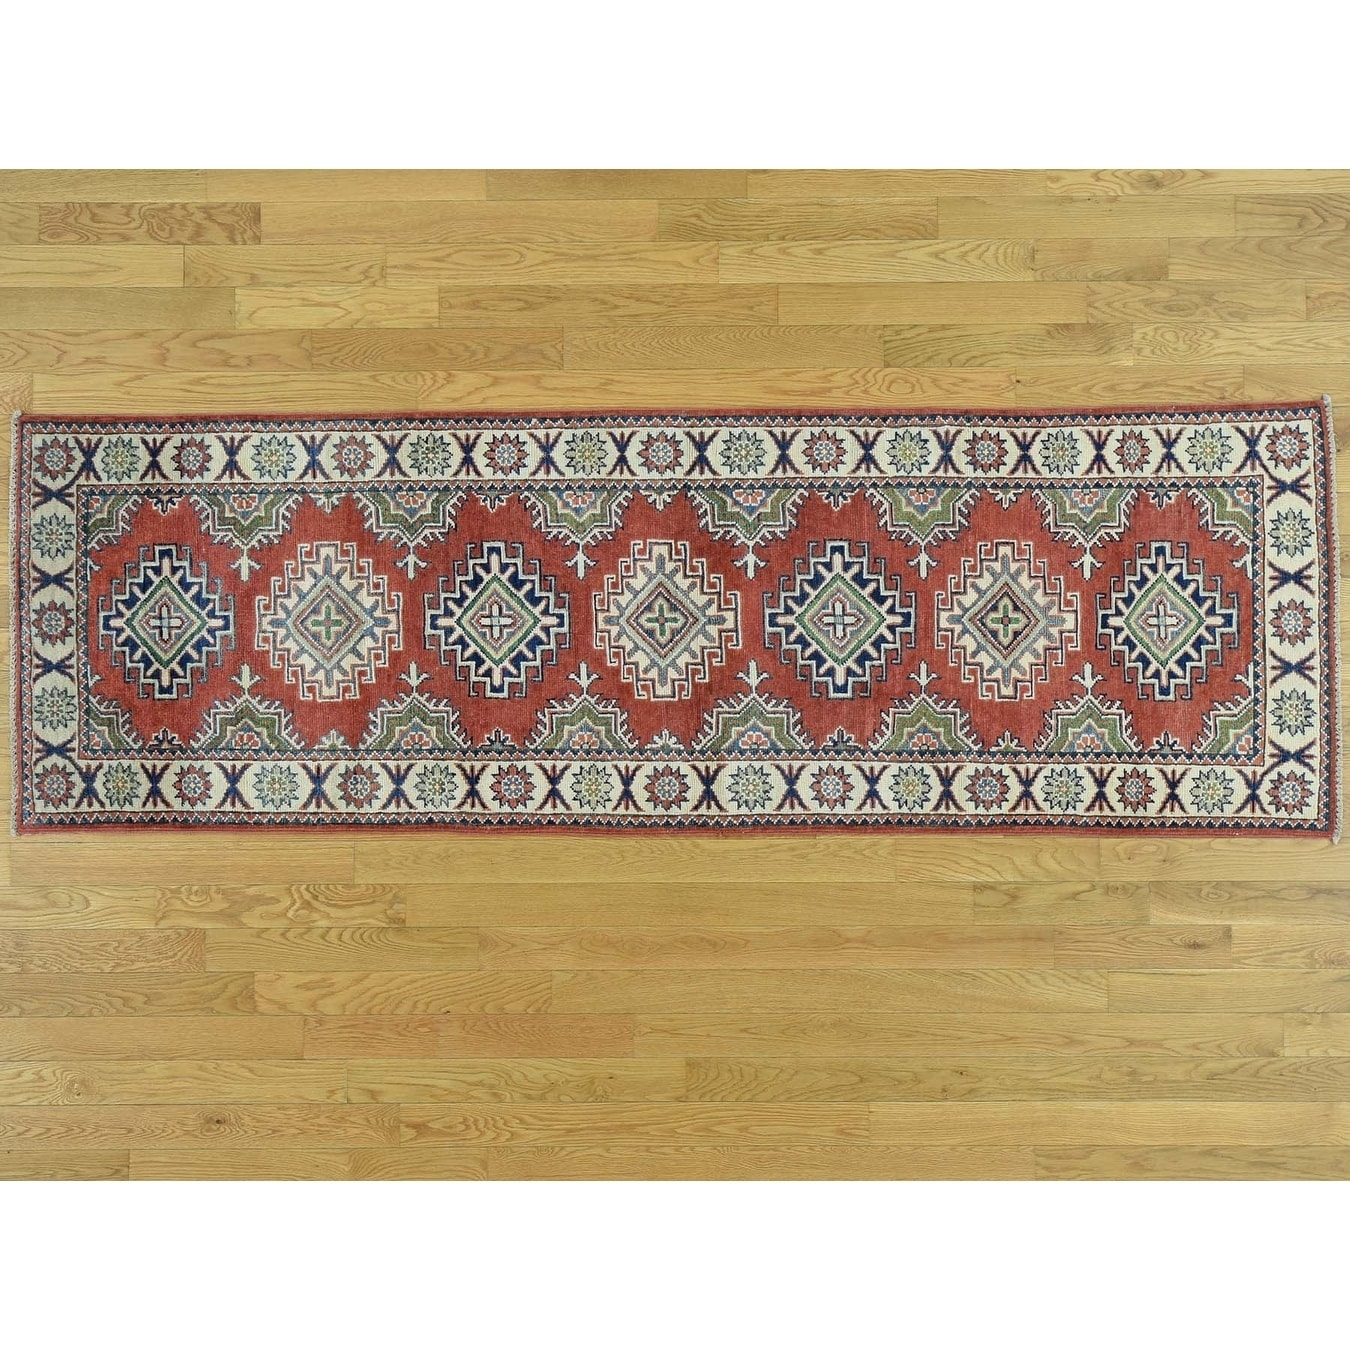 Hand Knotted Red Kazak with Wool Oriental Rug - 28 x 84